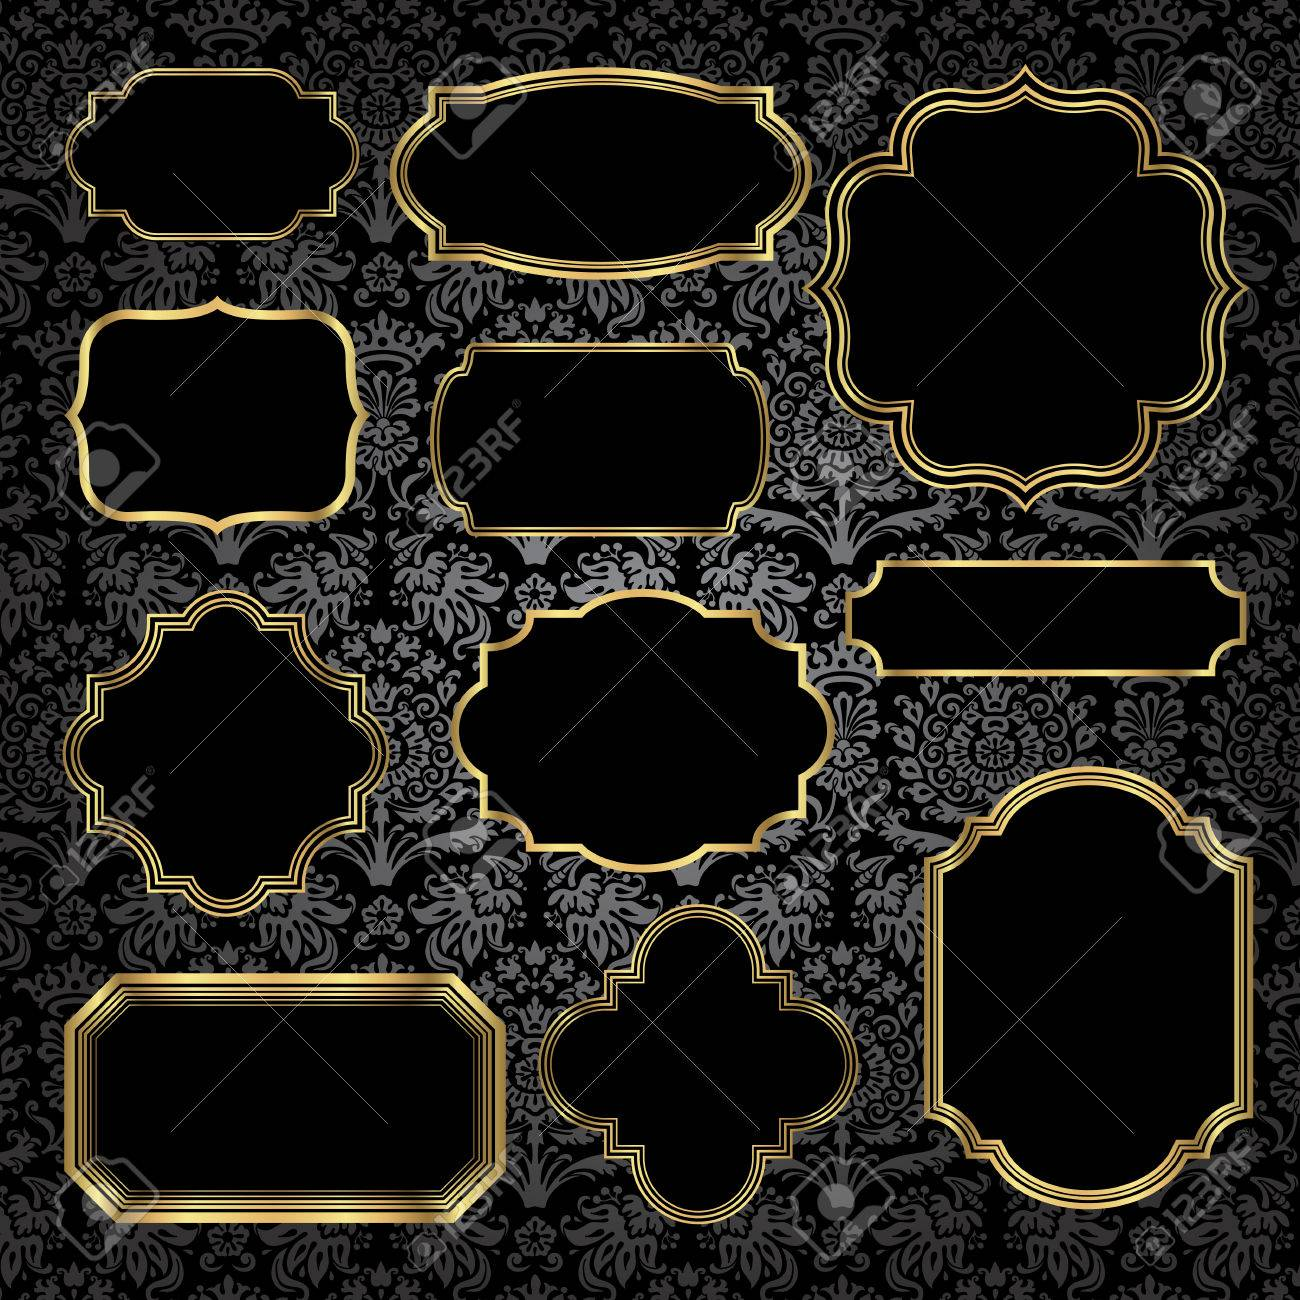 8721bc011185 Gold Vintage Frames on Damask Background - Set of gold vintage frame and label  shapes on seamless damask background. Damask background is behind a  clipping ...